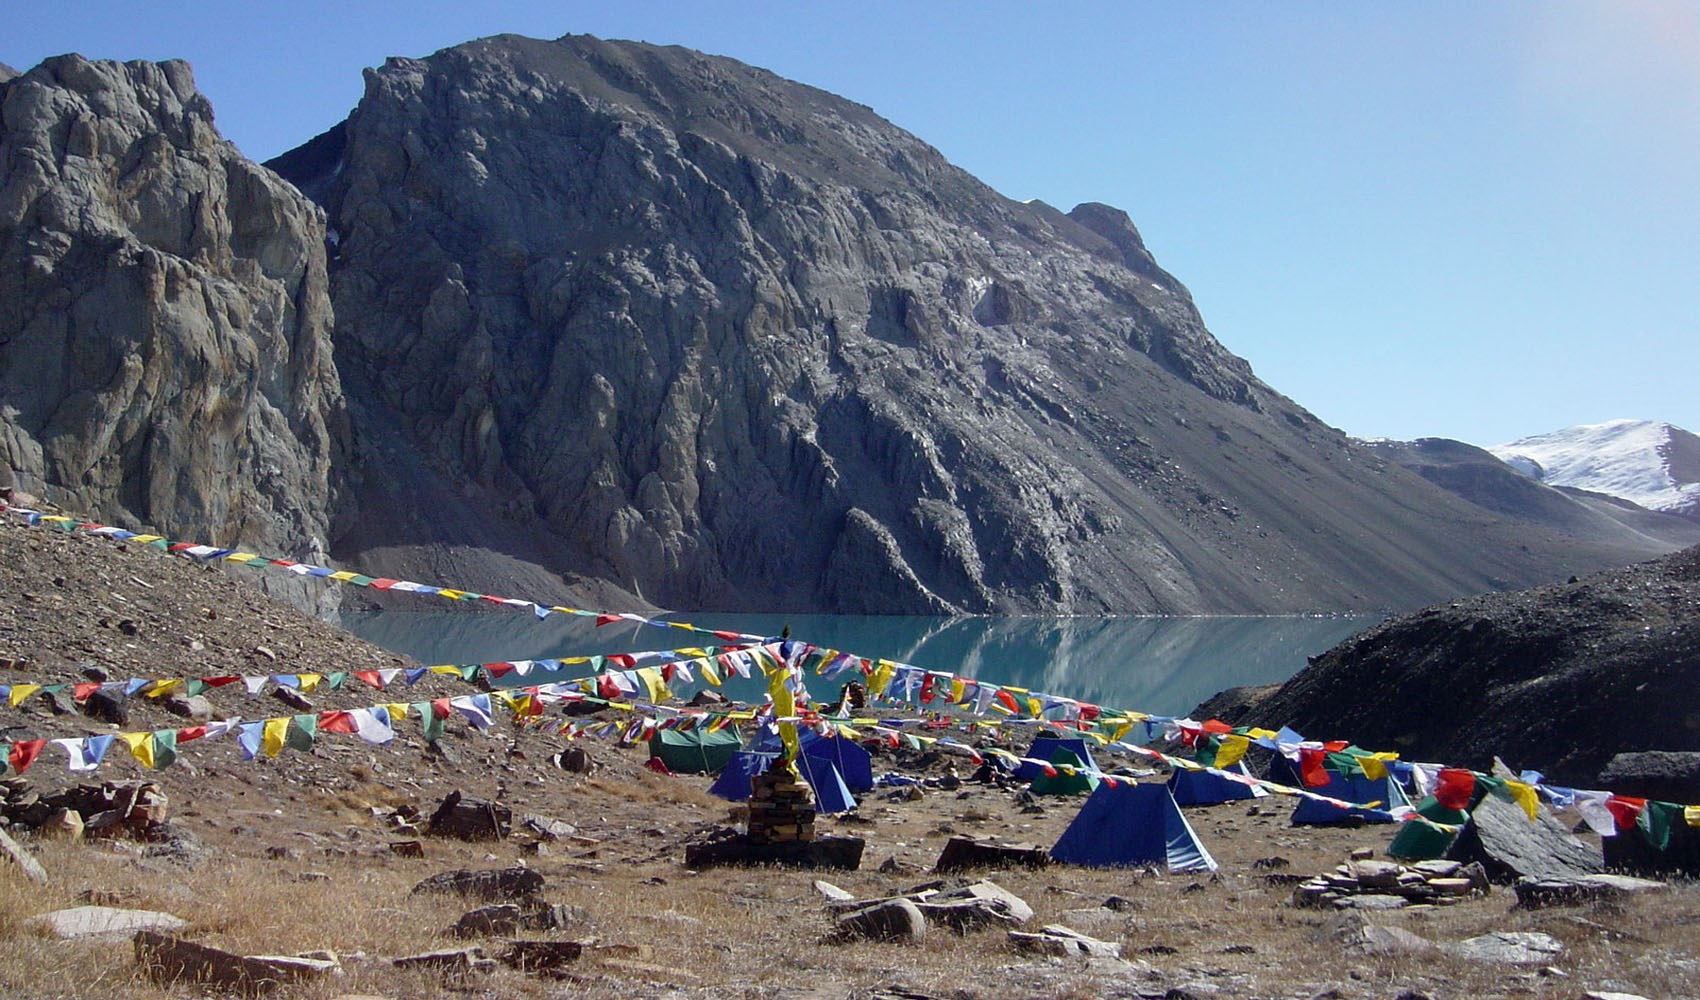 Camp de base du Tilicho au bord du lac